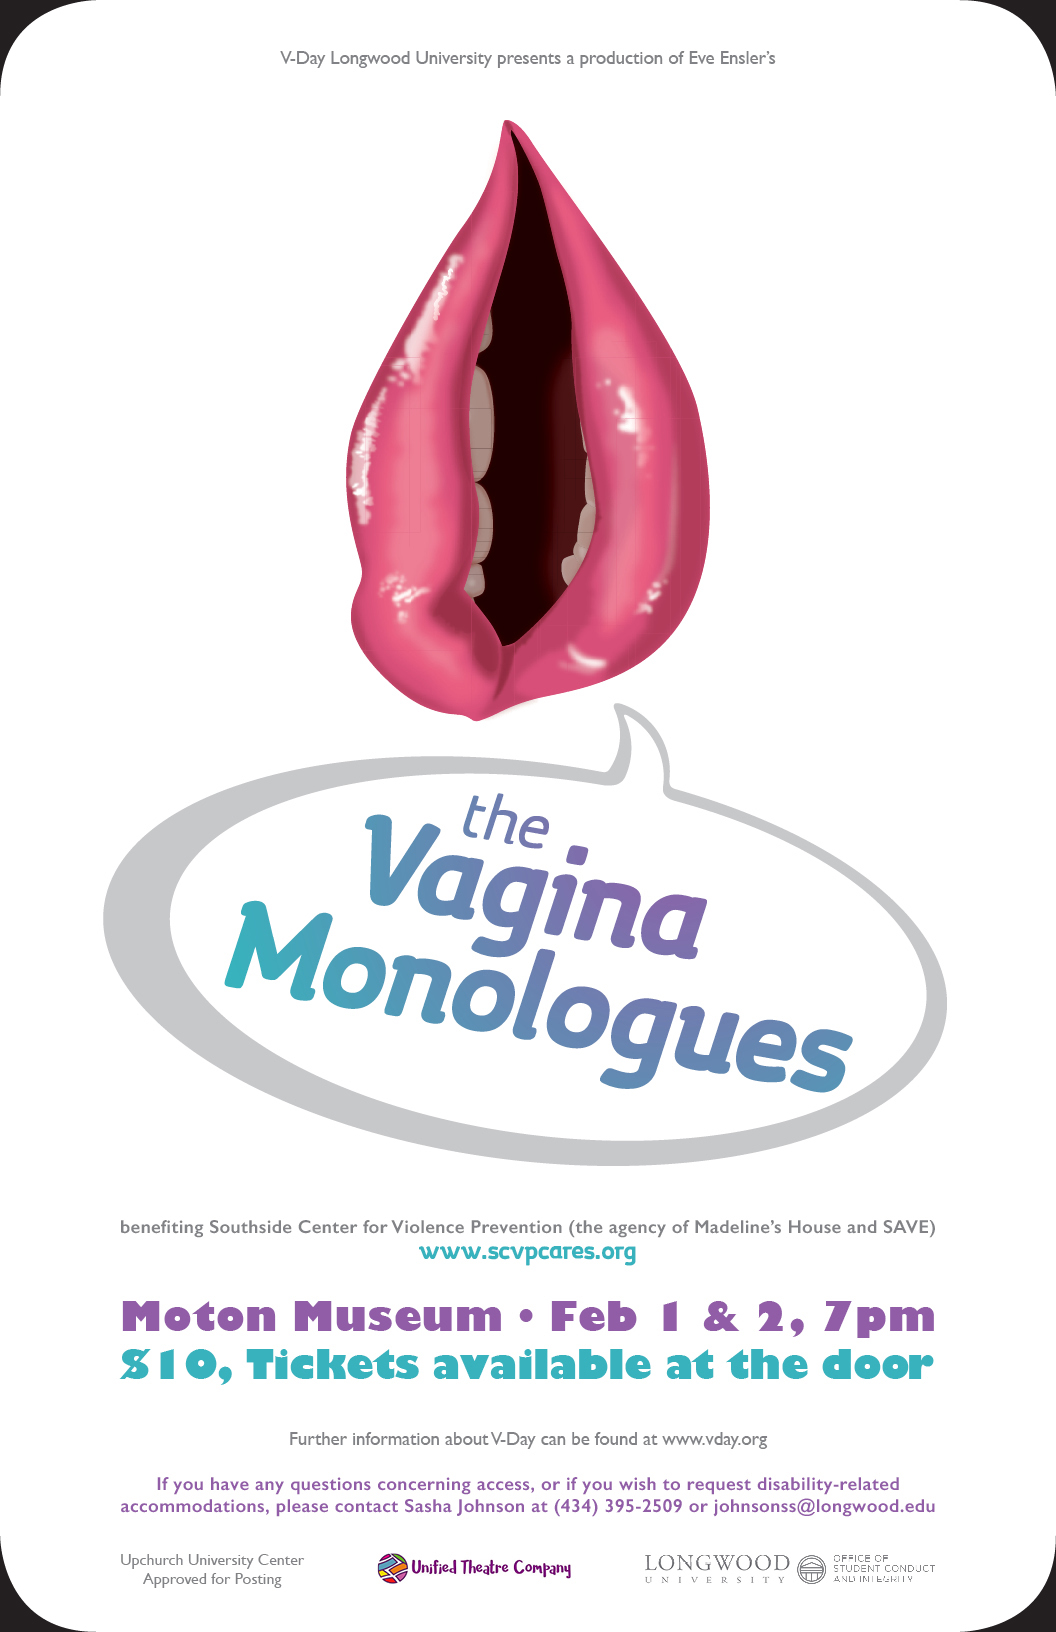 the Vagina Monologues 2019